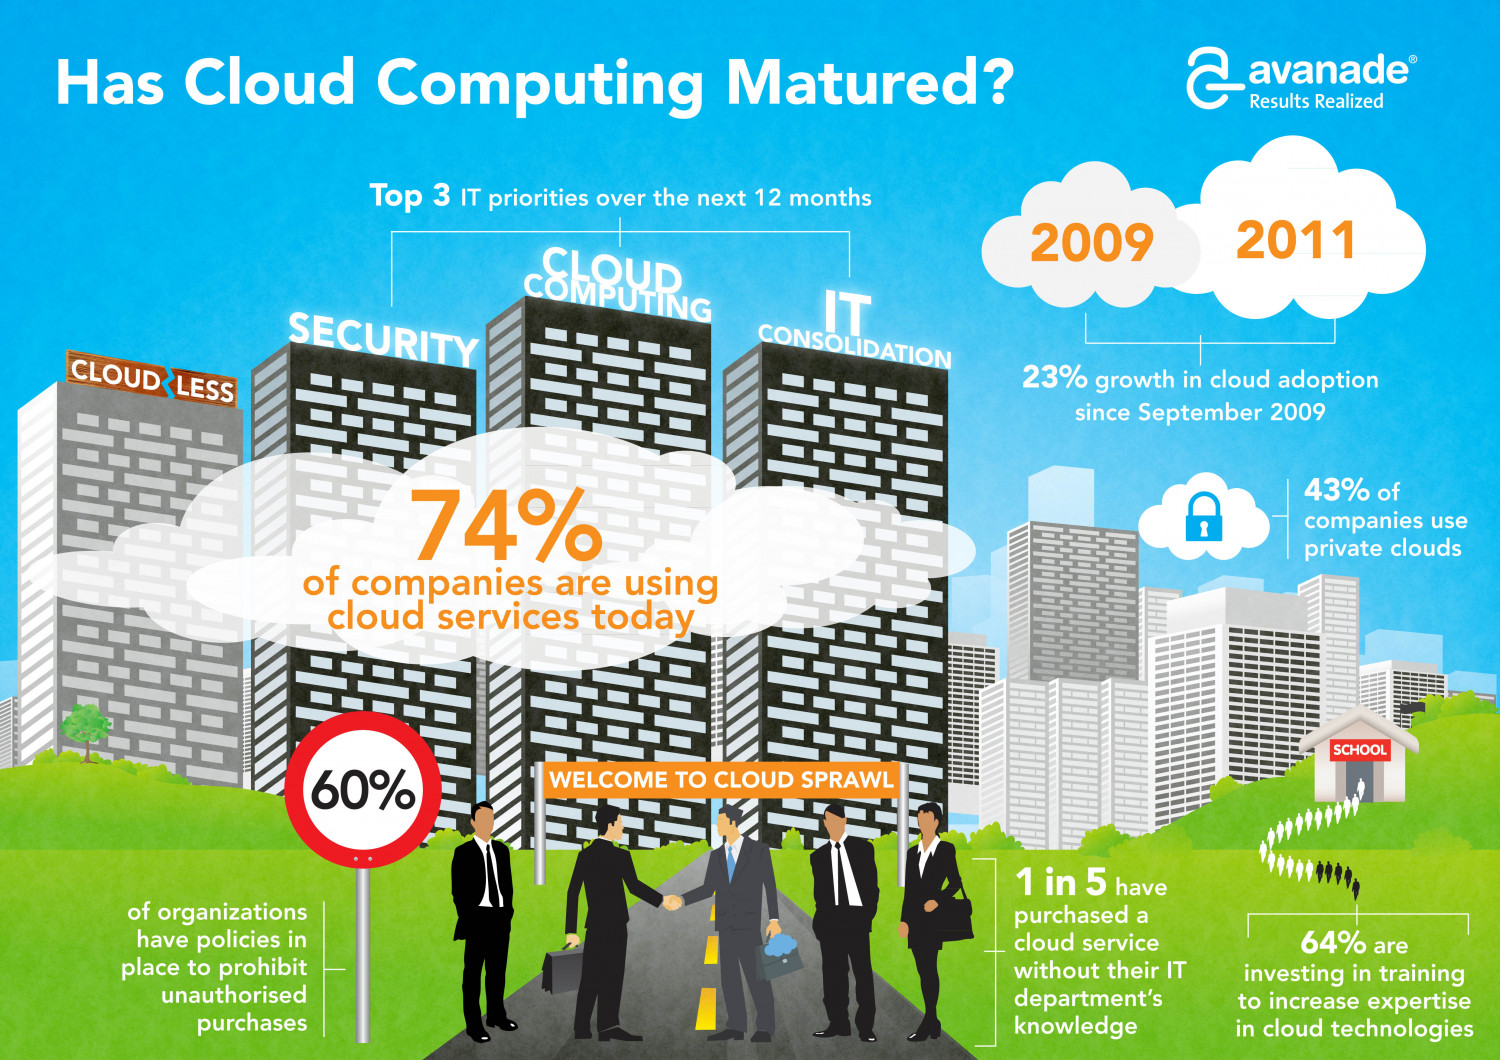 Has Cloud Computing Matured? Infographic